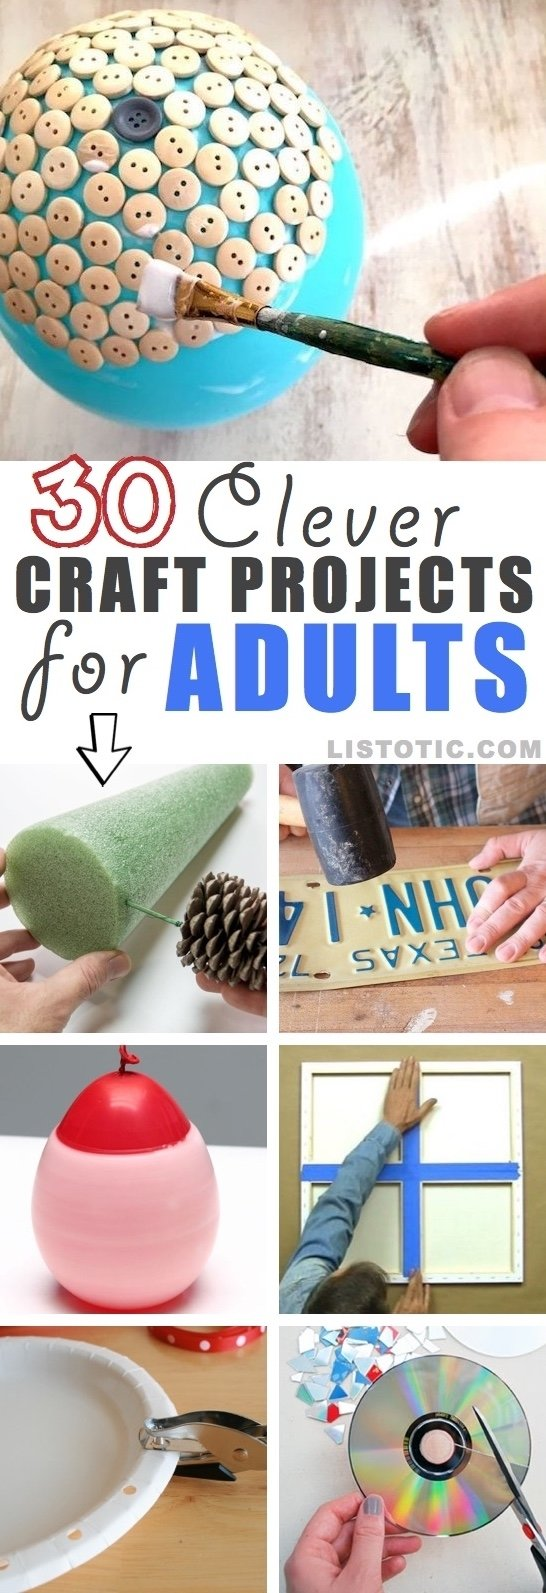 10 Best Easy Craft Ideas For Adults 30 easy craft ideas that will spark your creativity diy projects 2020